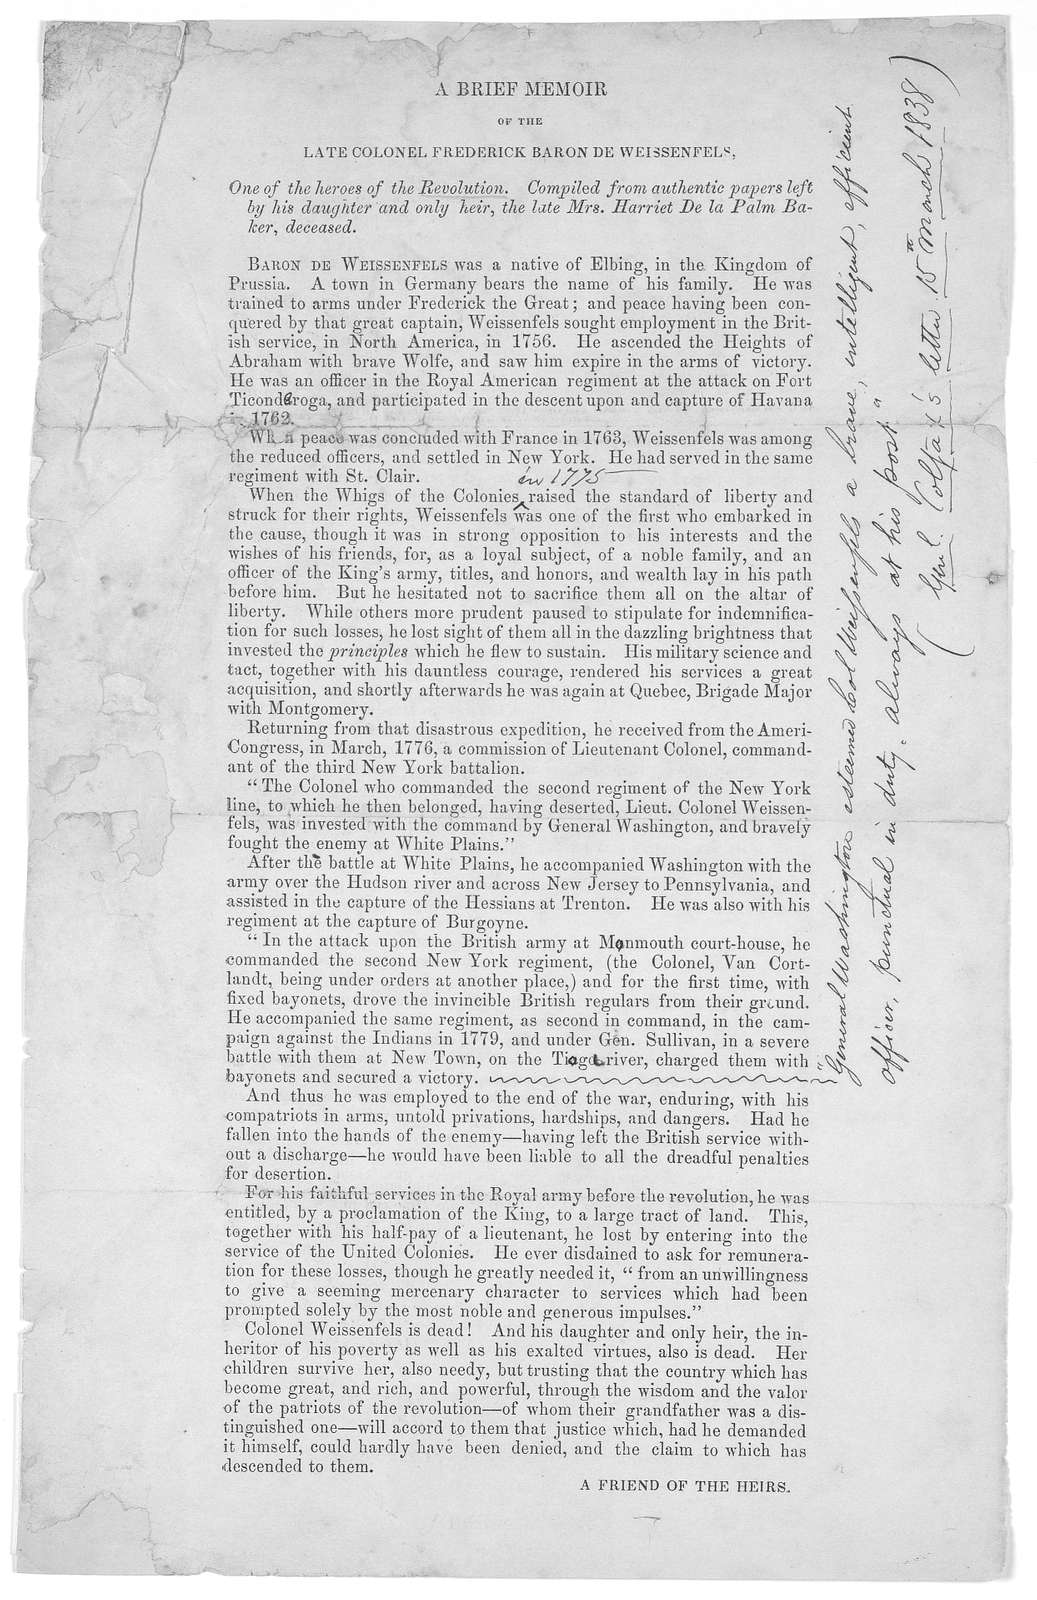 A brief memoir of the late colonel Frederick Baron de Weissenfels. one of the heroes of the Revolution. Compiled from authentic papers left by his daughter and only heir, the late Mrs. Harriet De la Palm Baker, deceased ... [Signed] A friend of